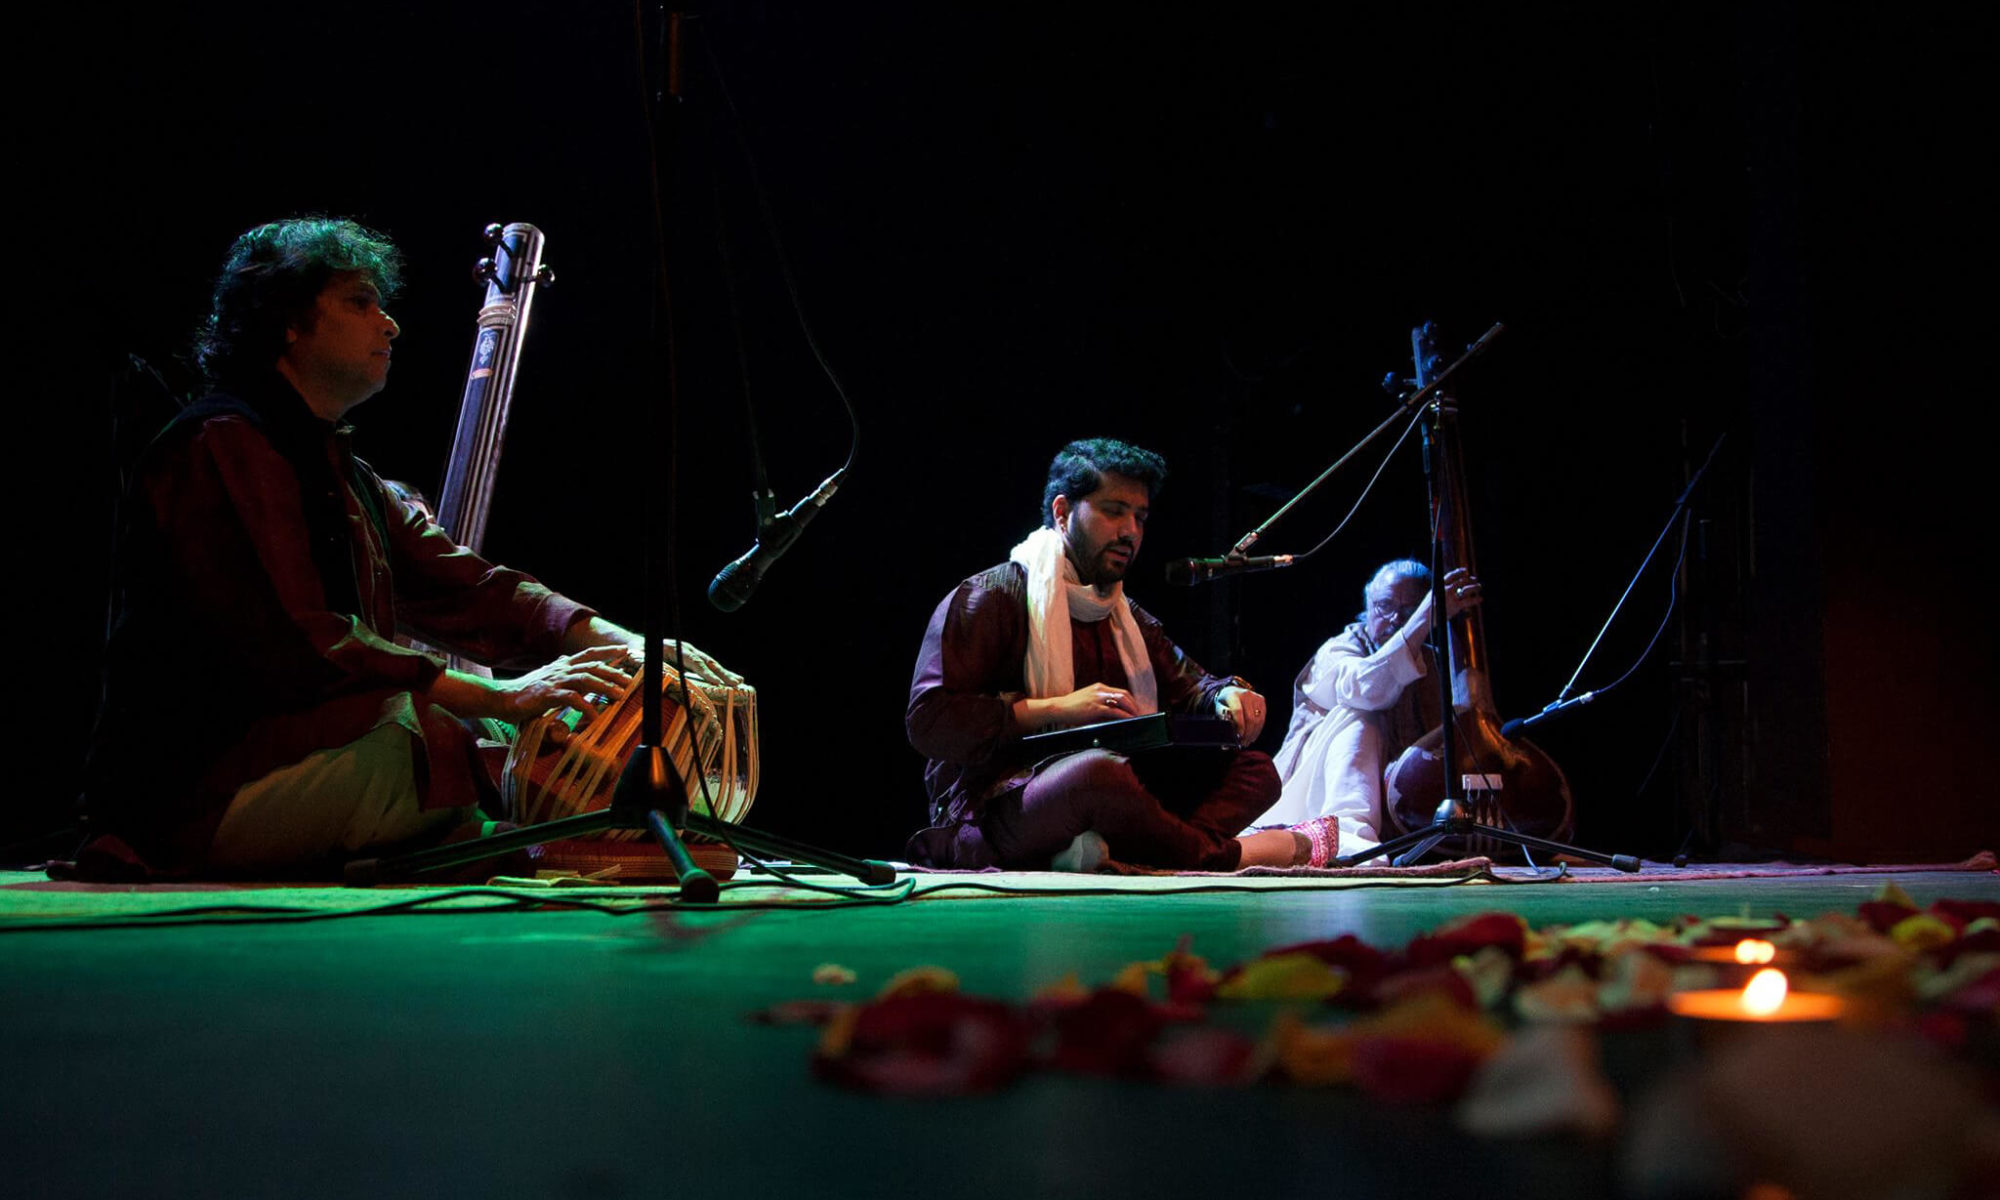 Samrat Pandit Promo Shot on stage with tabla and tanpura players in the shade with candles